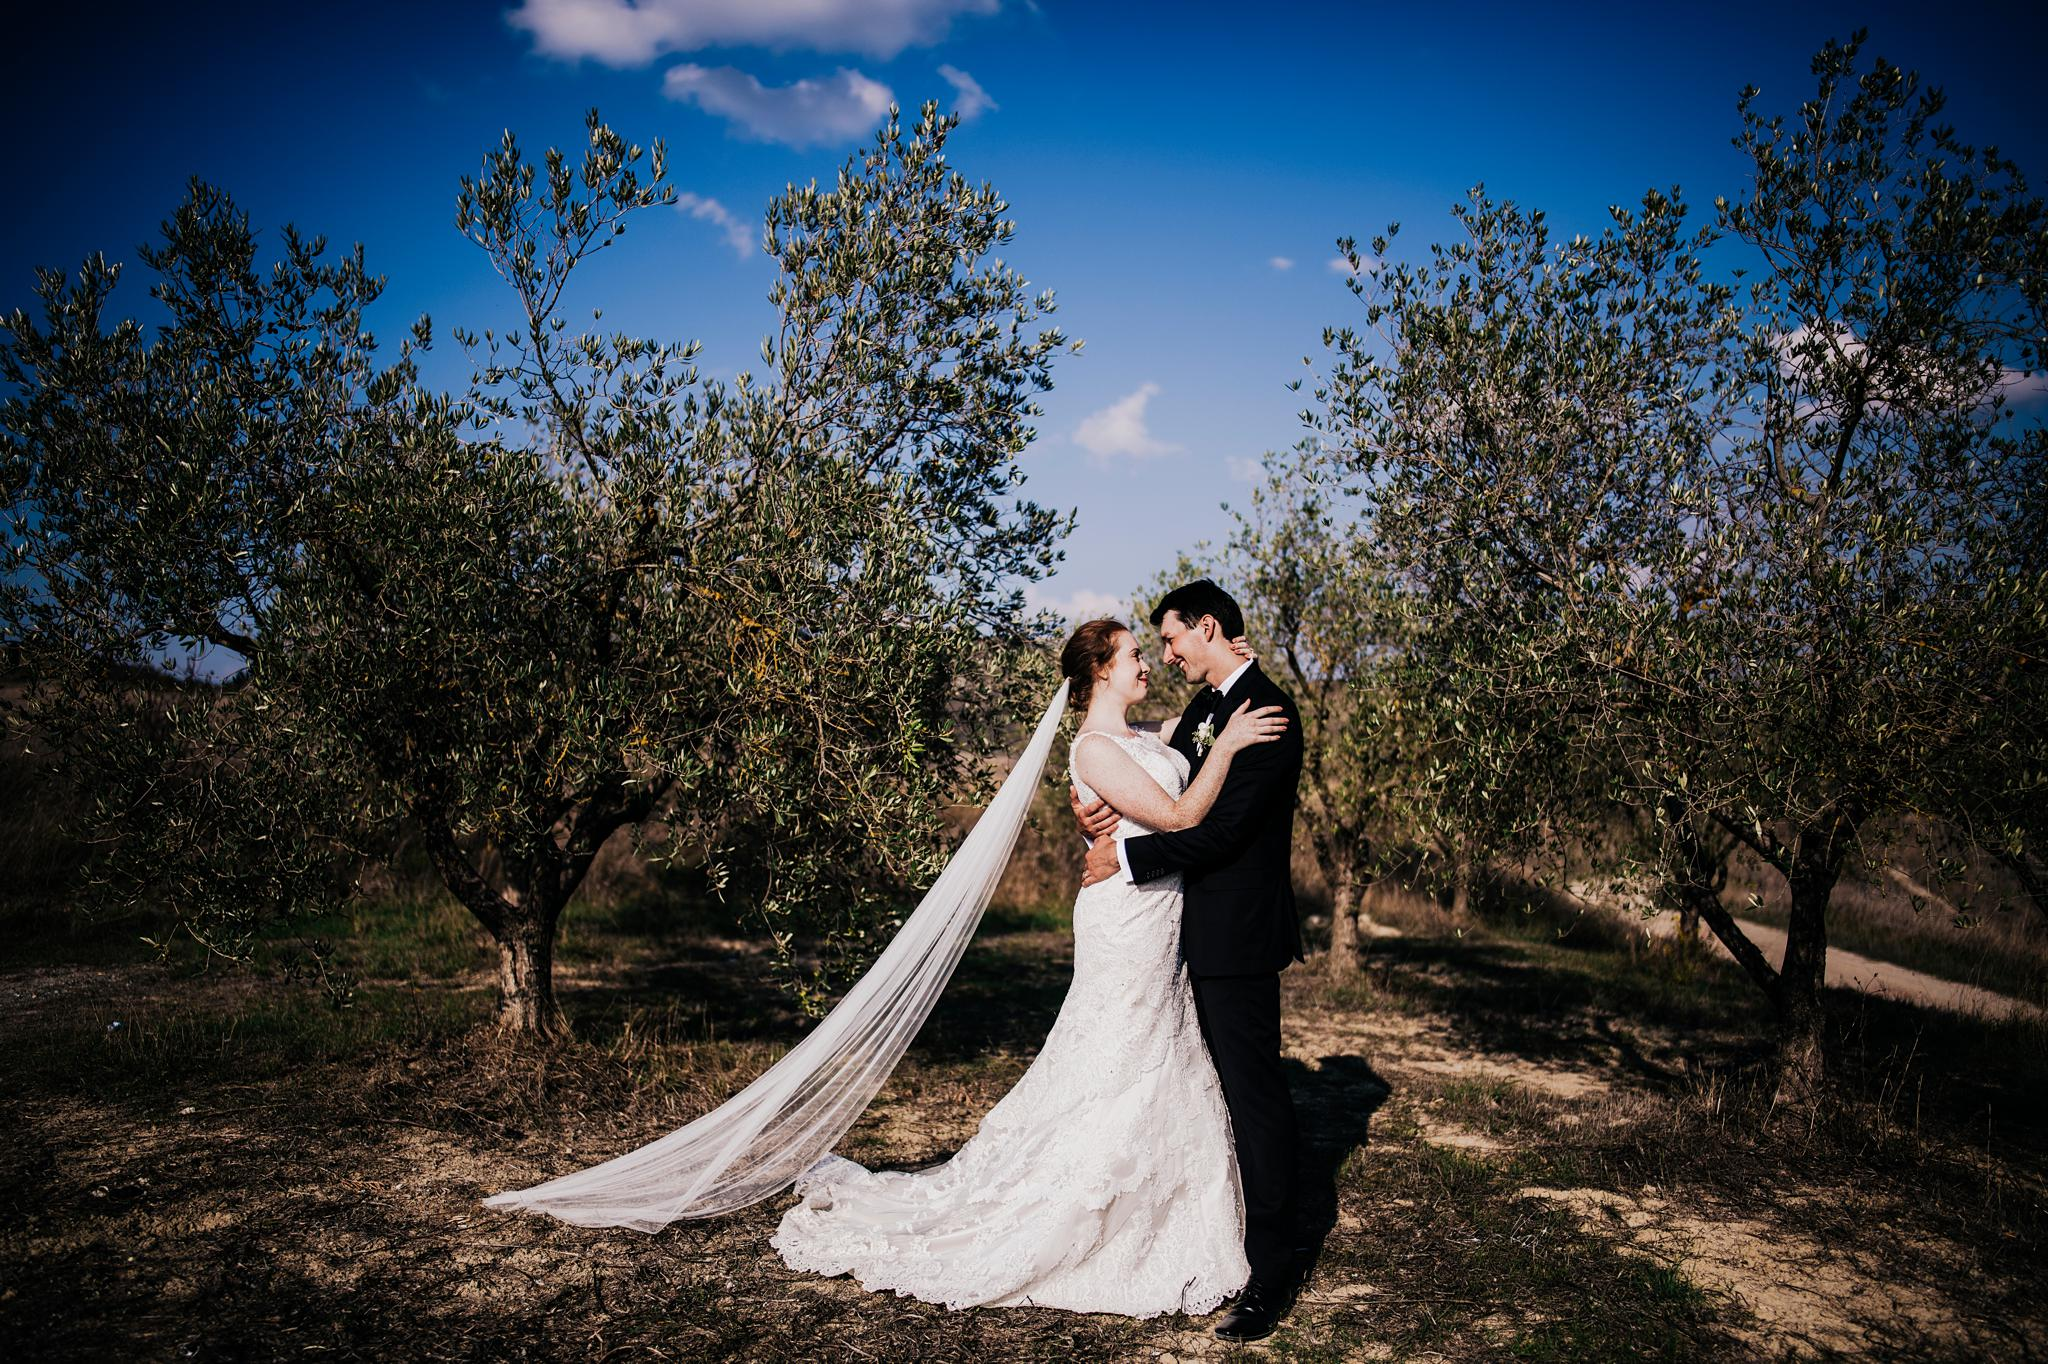 Wedding Certaldo Tuscany